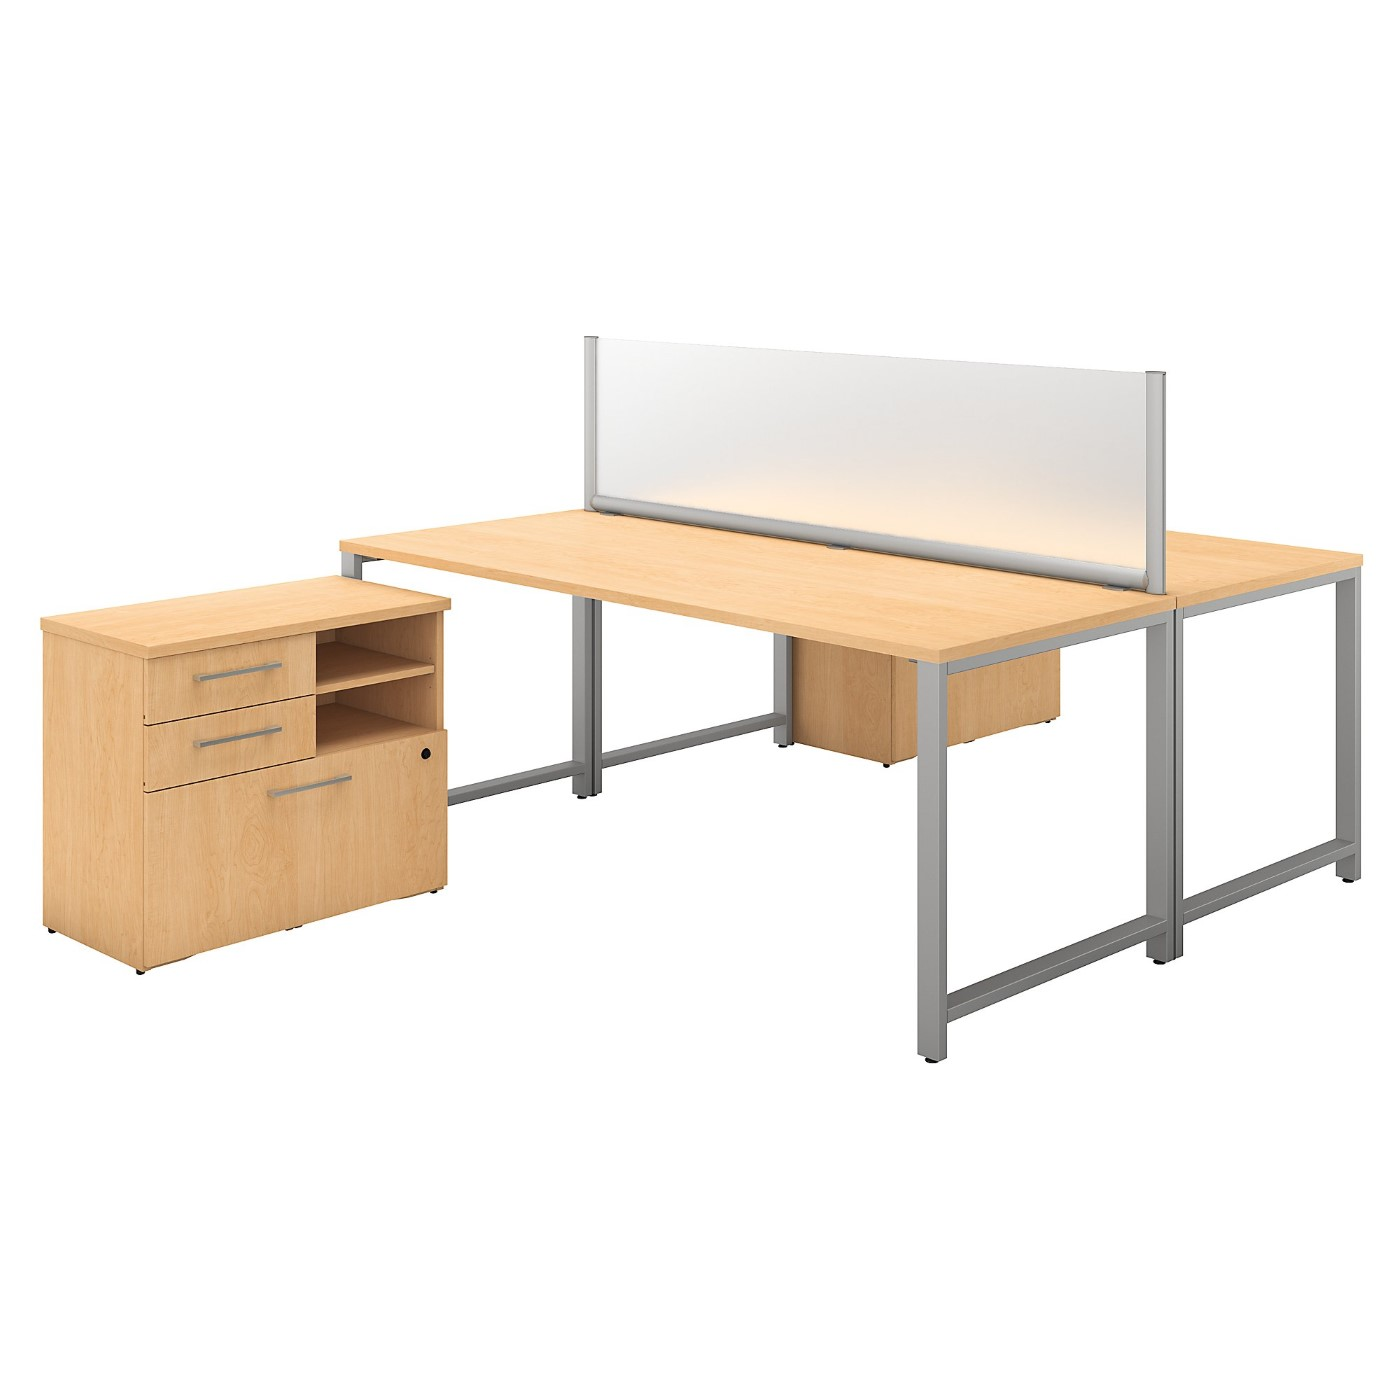 BUSH BUSINESS FURNITURE 400 SERIES 72W X 30D 2 PERSON WORKSTATION WITH TABLE DESKS AND STORAGE. FREE SHIPPING